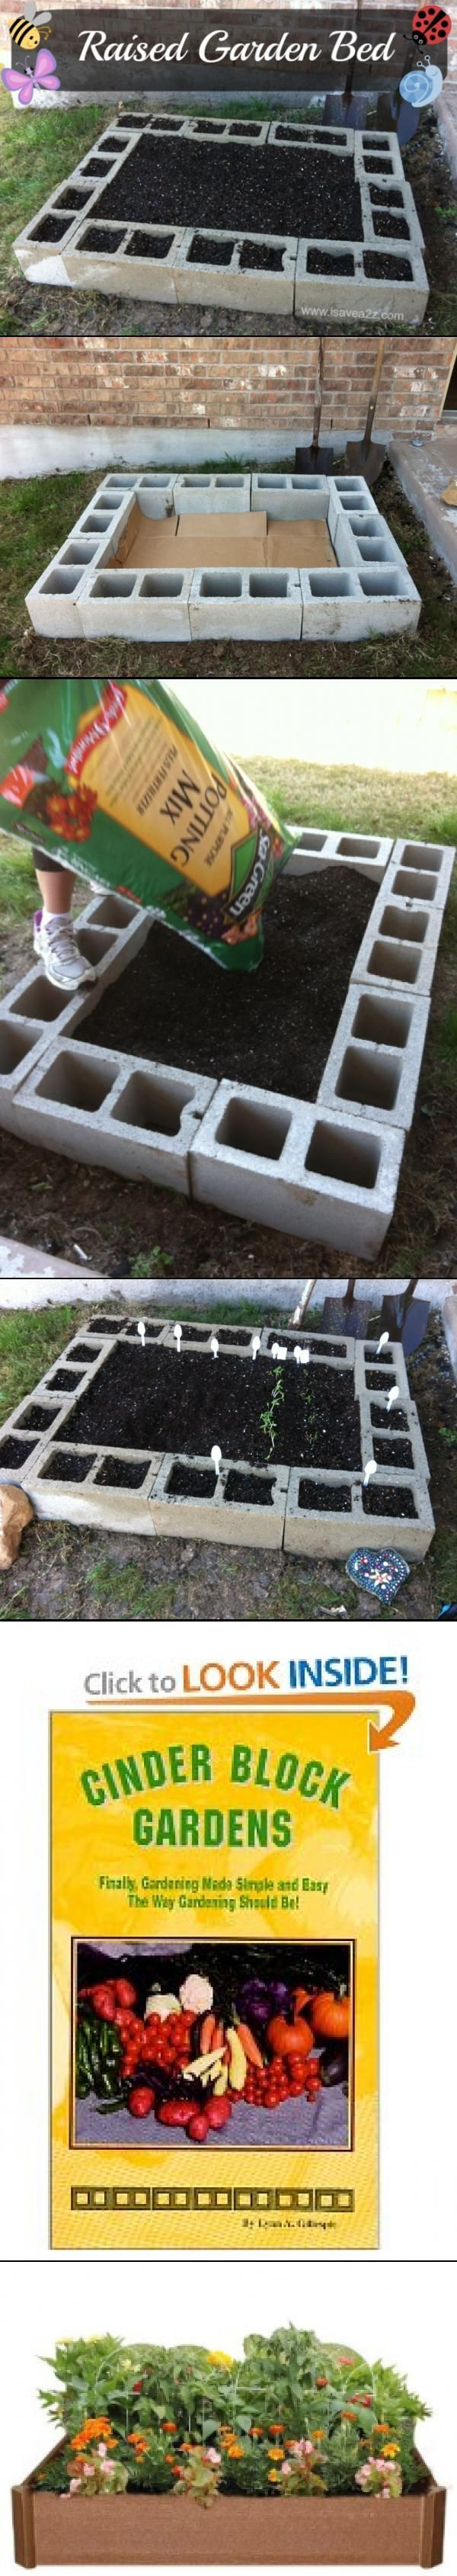 What an easy way to start a garden here in Vegas. I am going to paint the cinder blocks to look more decorative.